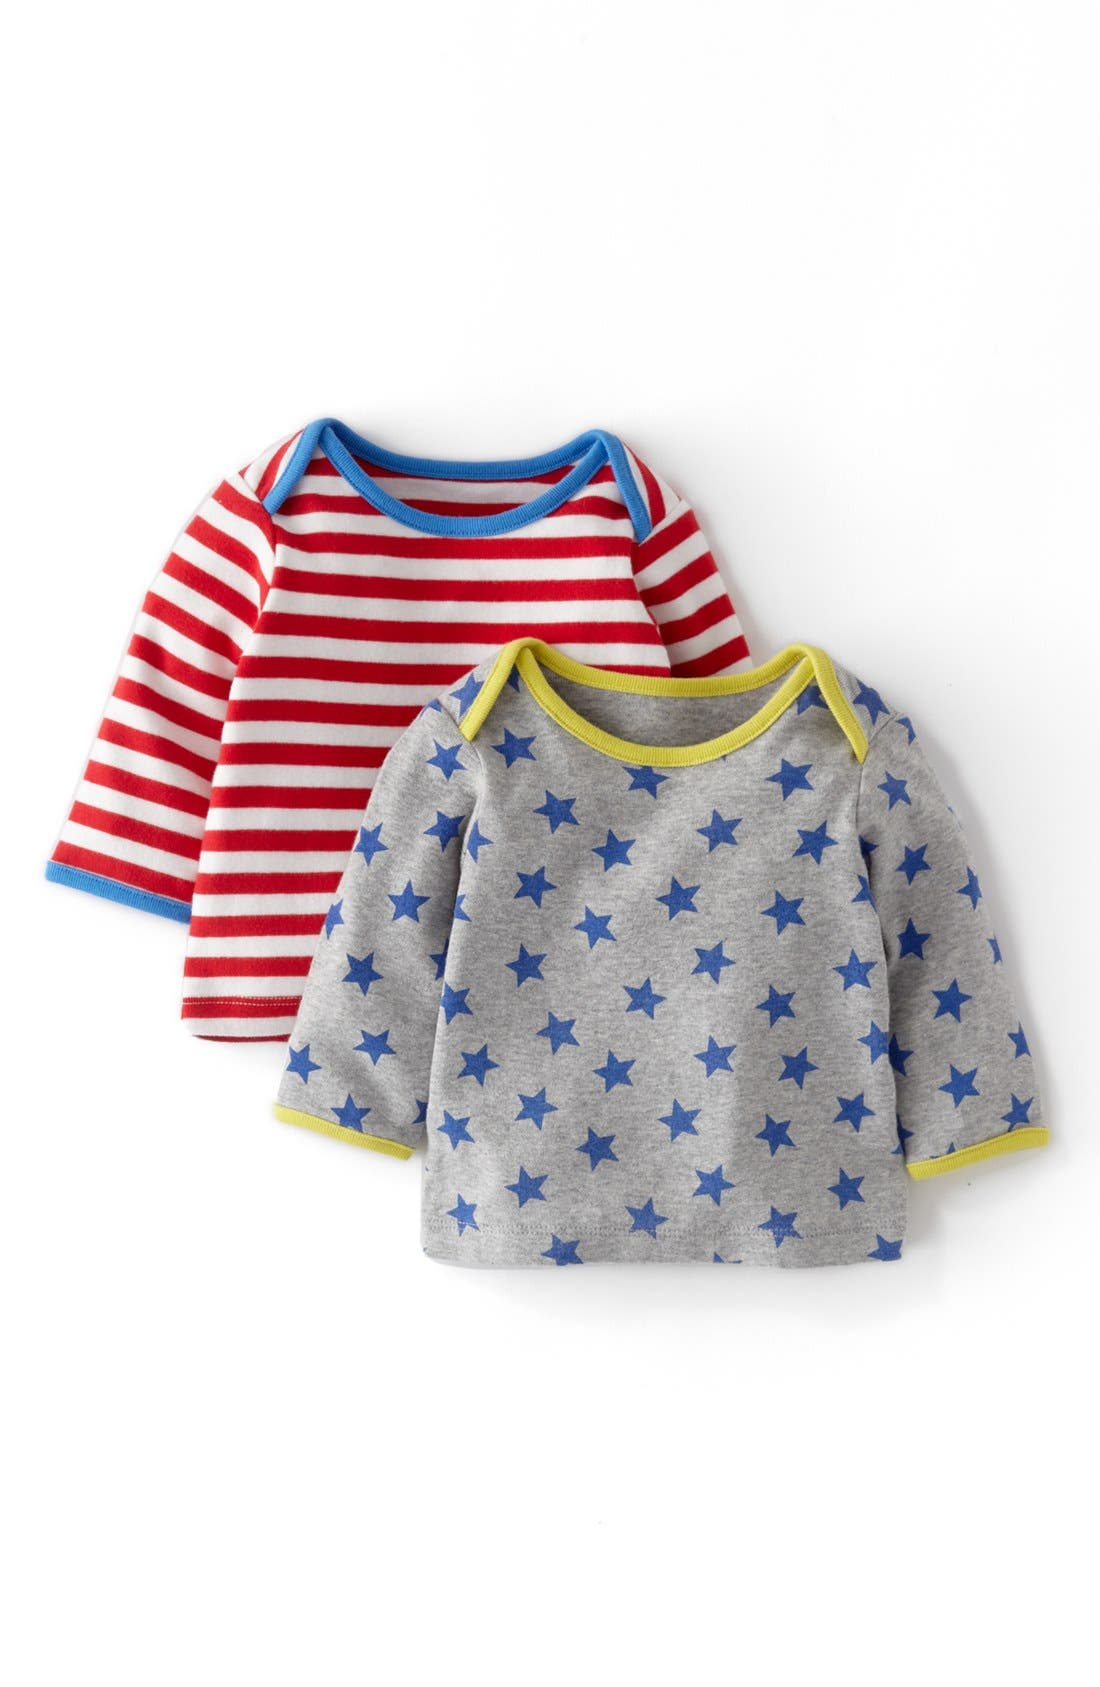 Main Image - Mini Boden Cotton Layering T-Shirt (2-Pack) (Baby Boys)